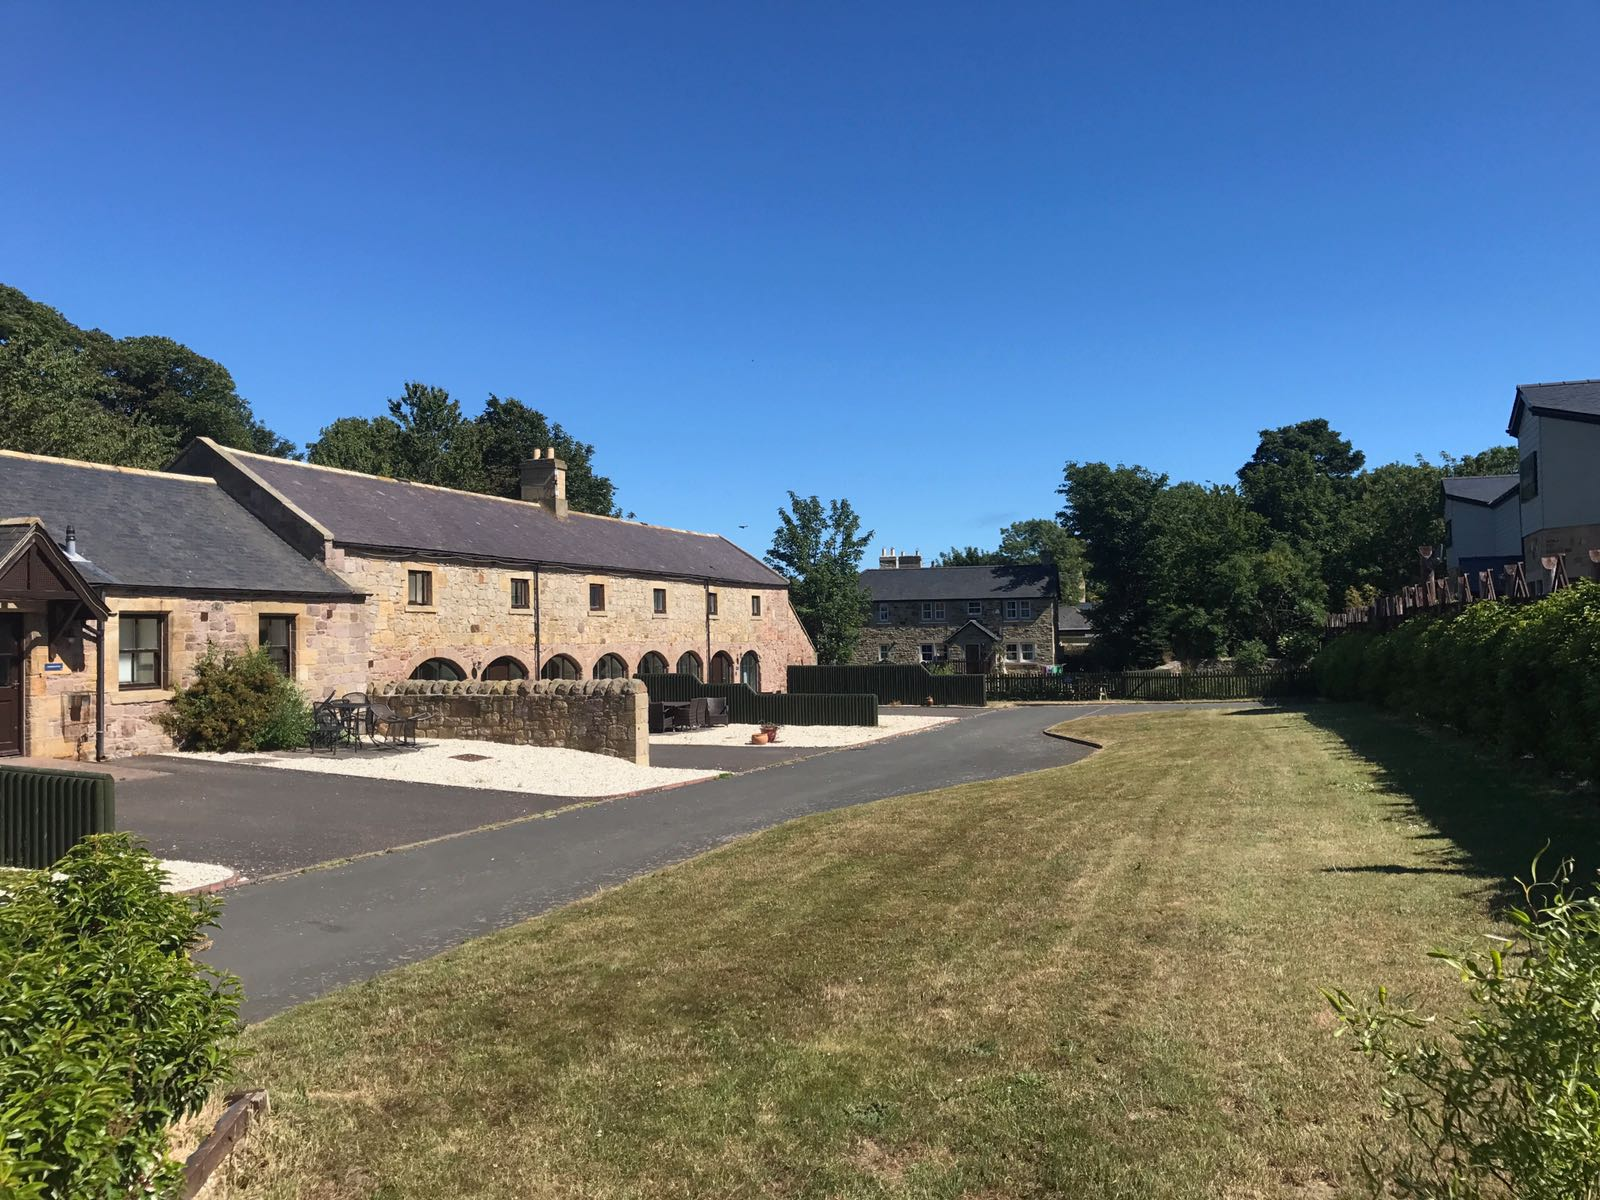 Self-catering holidays in Lucker, Northumberland